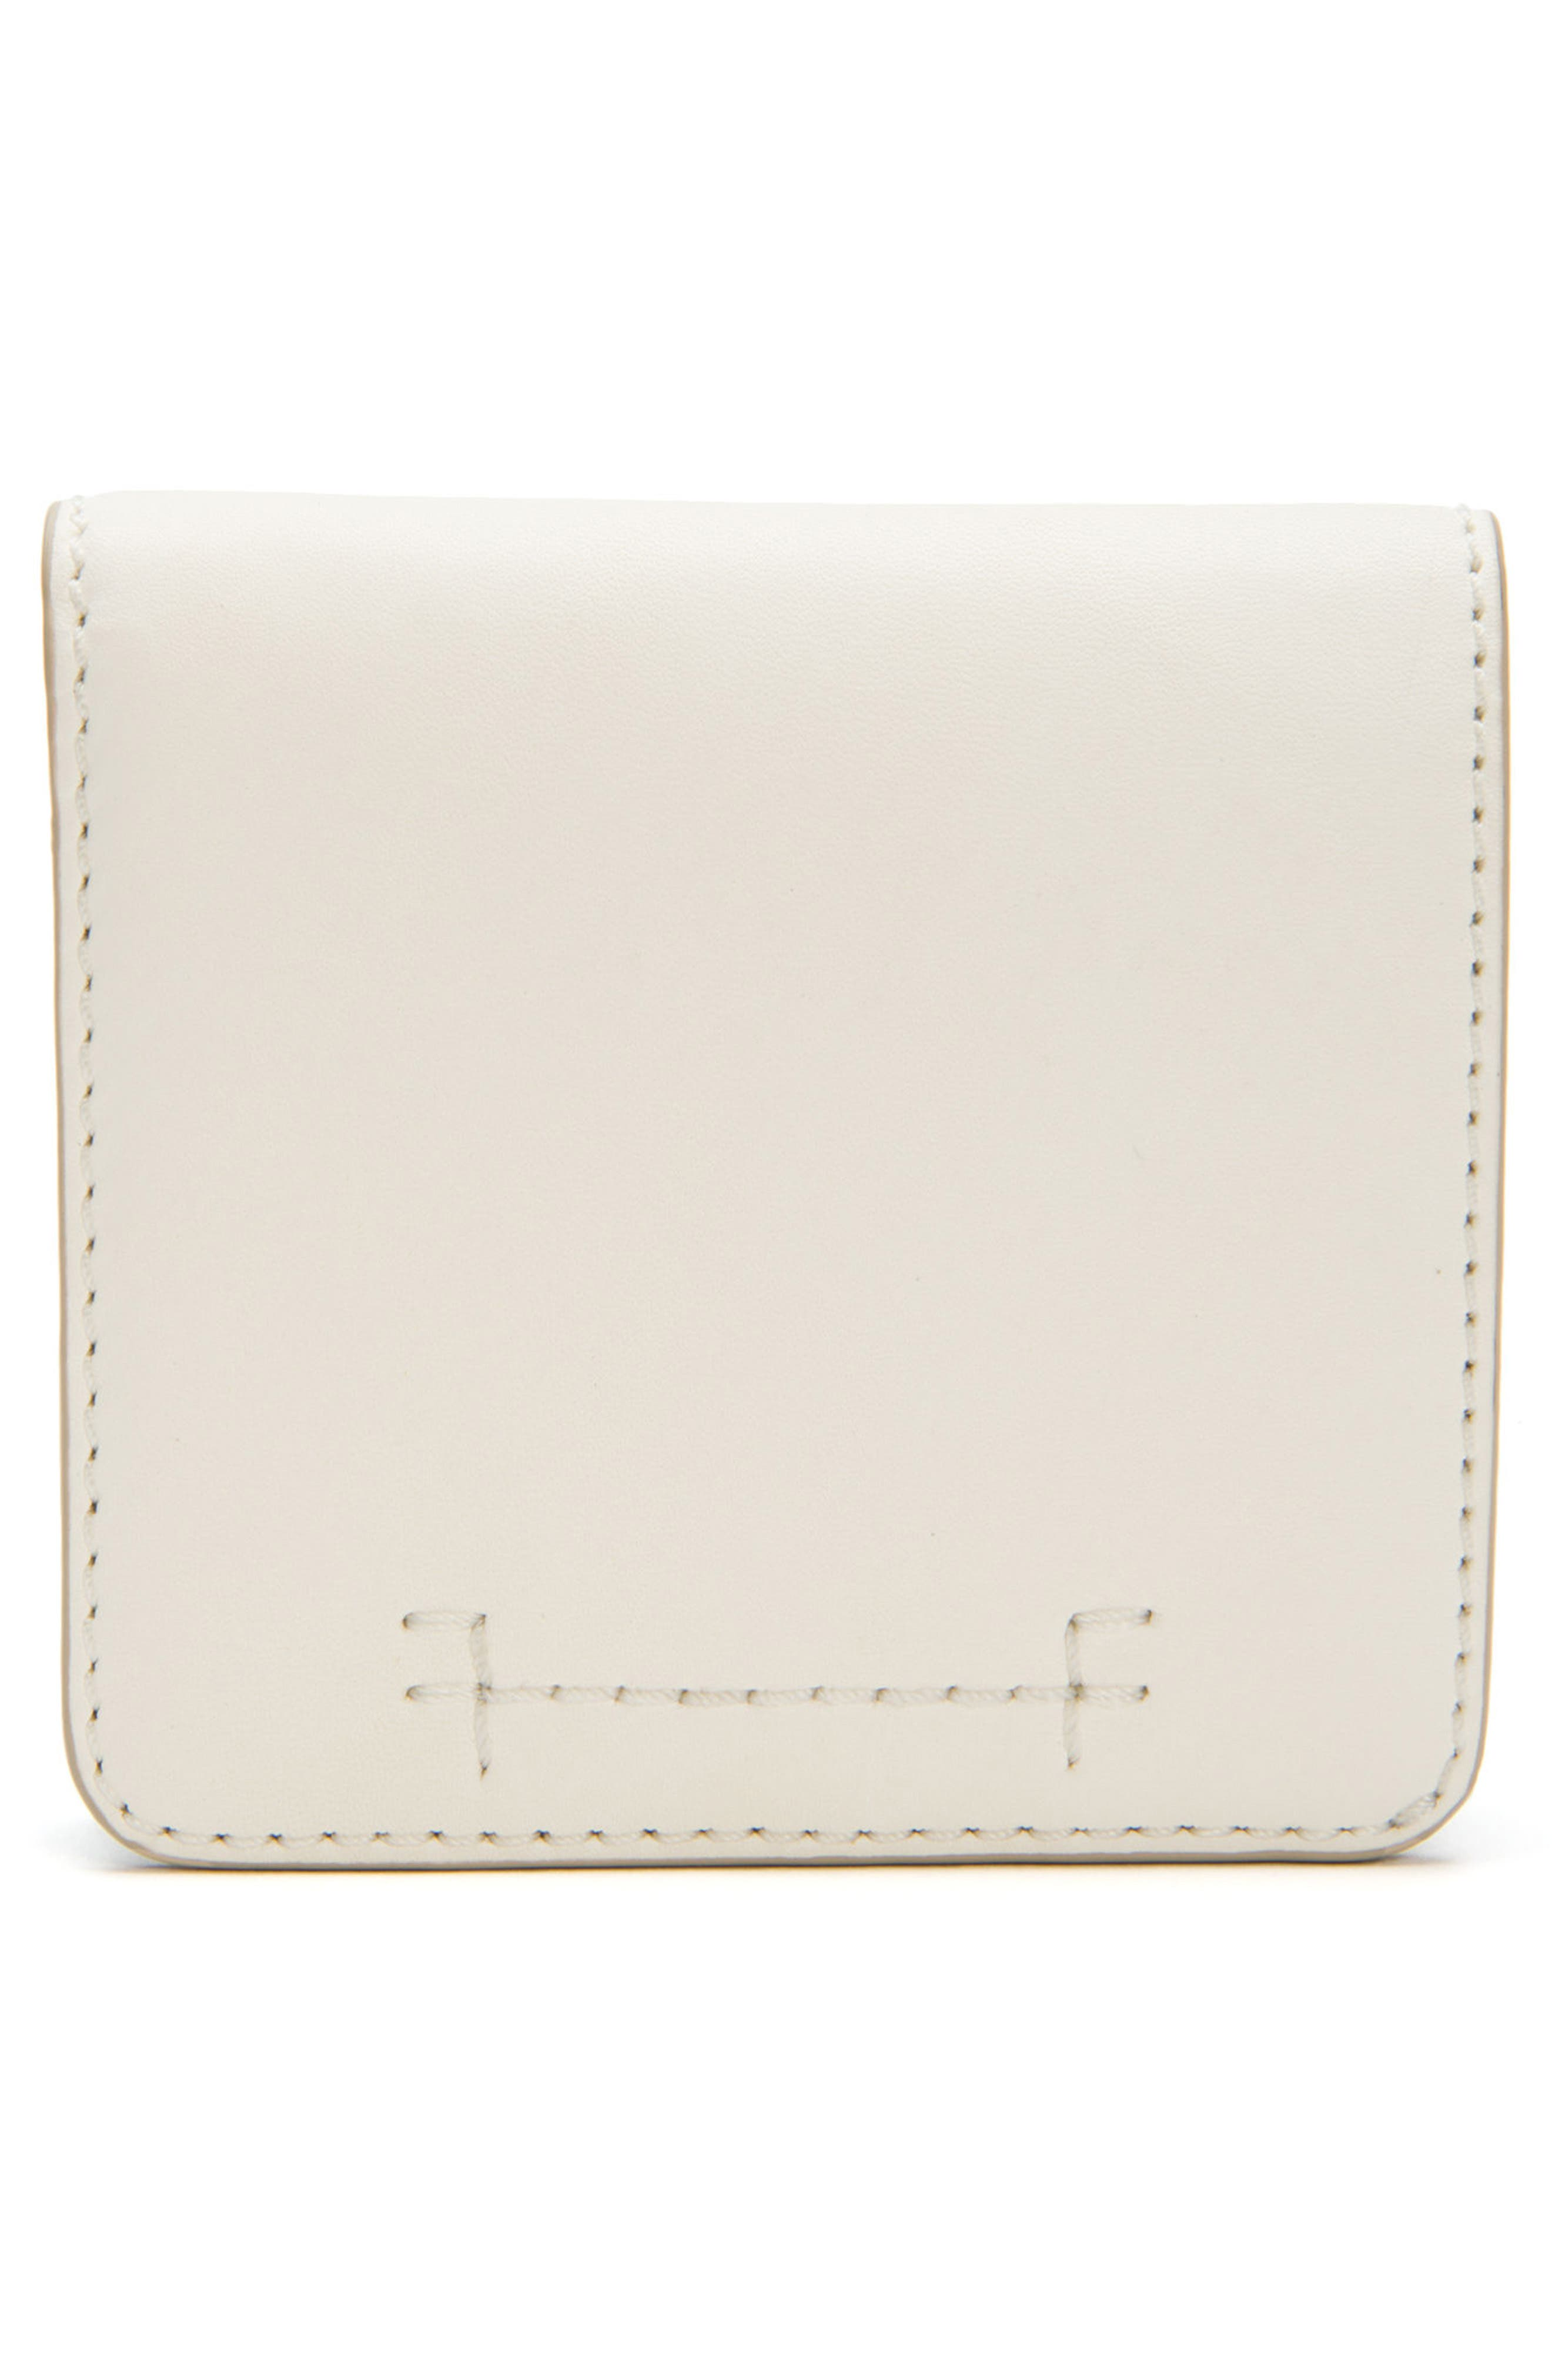 Carson Small Leather Wallet,                             Main thumbnail 1, color,                             White